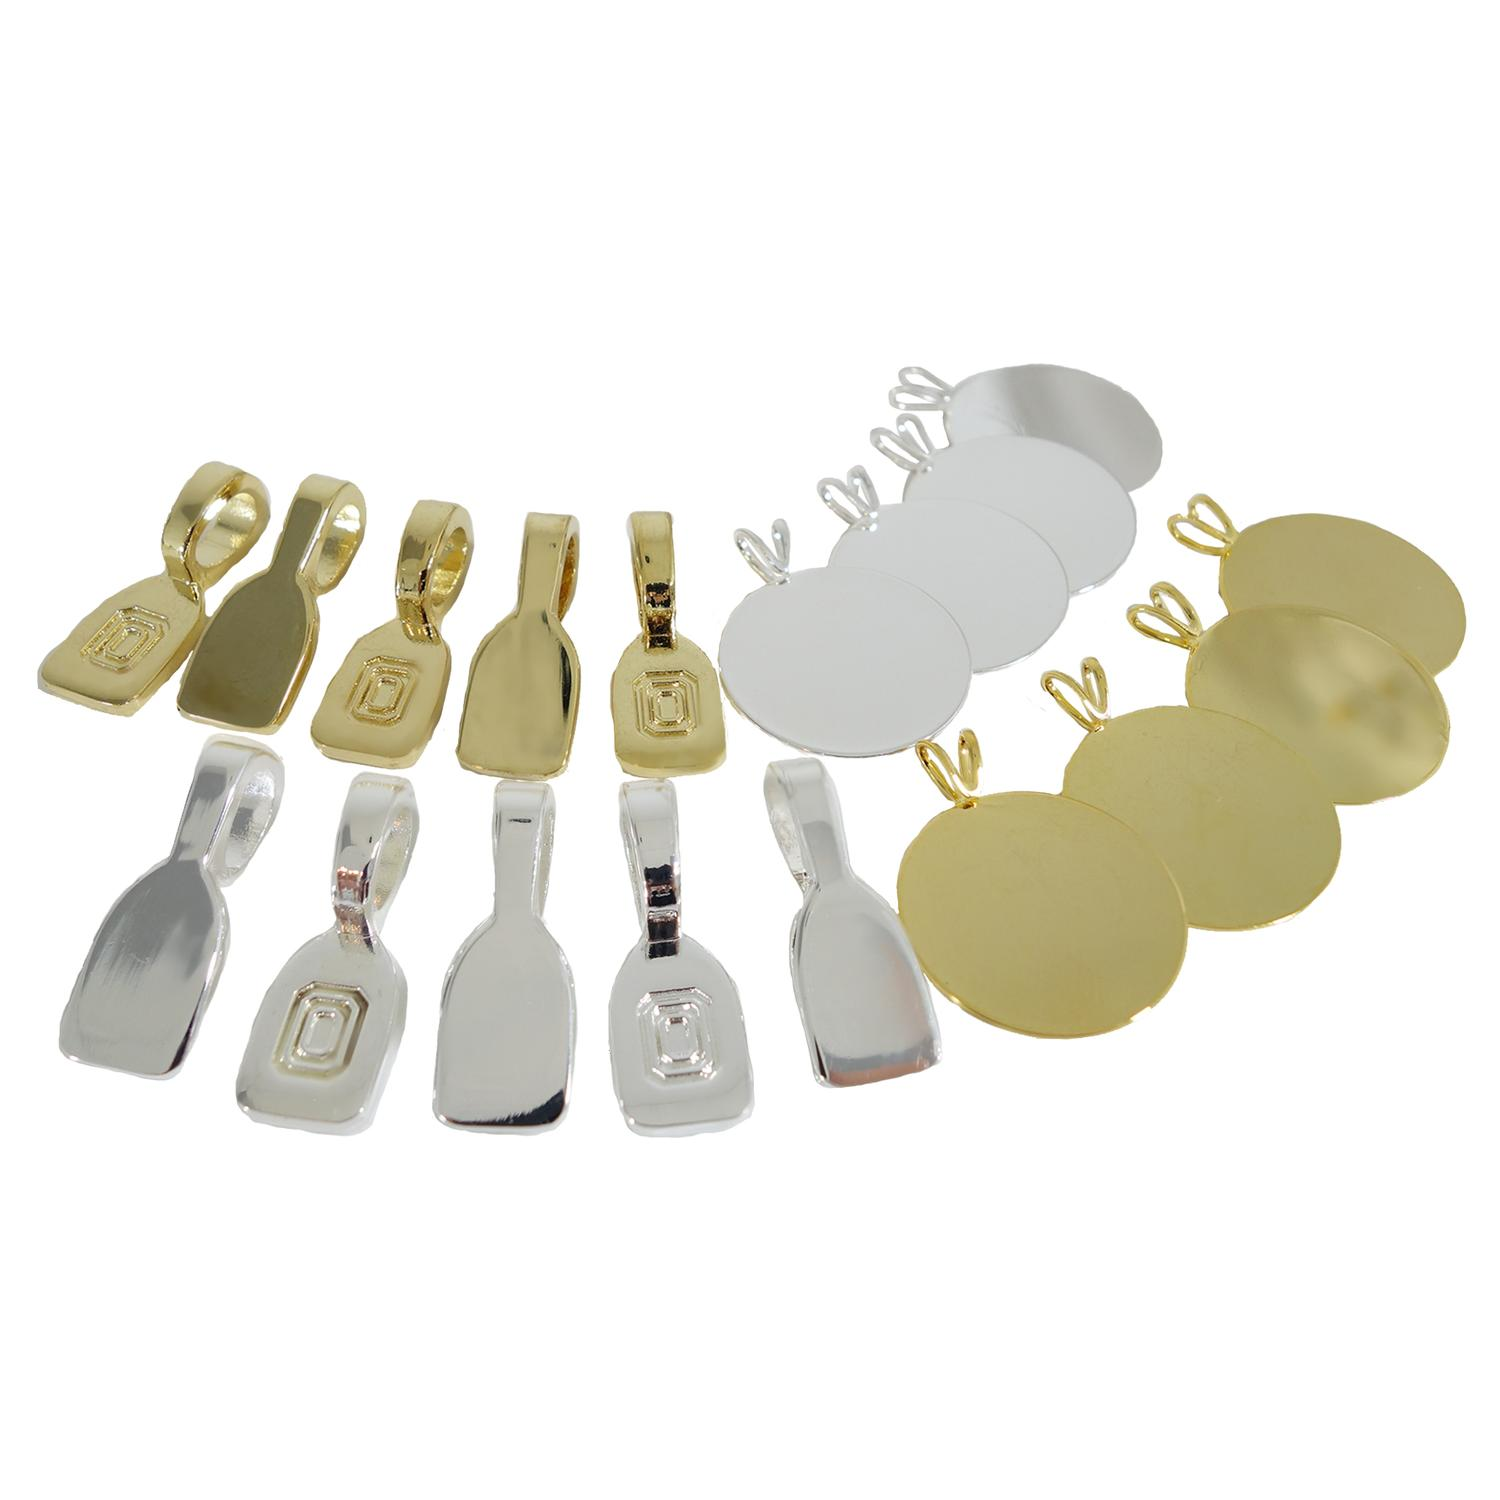 Jewelry Findings - 18 Piece Assortment